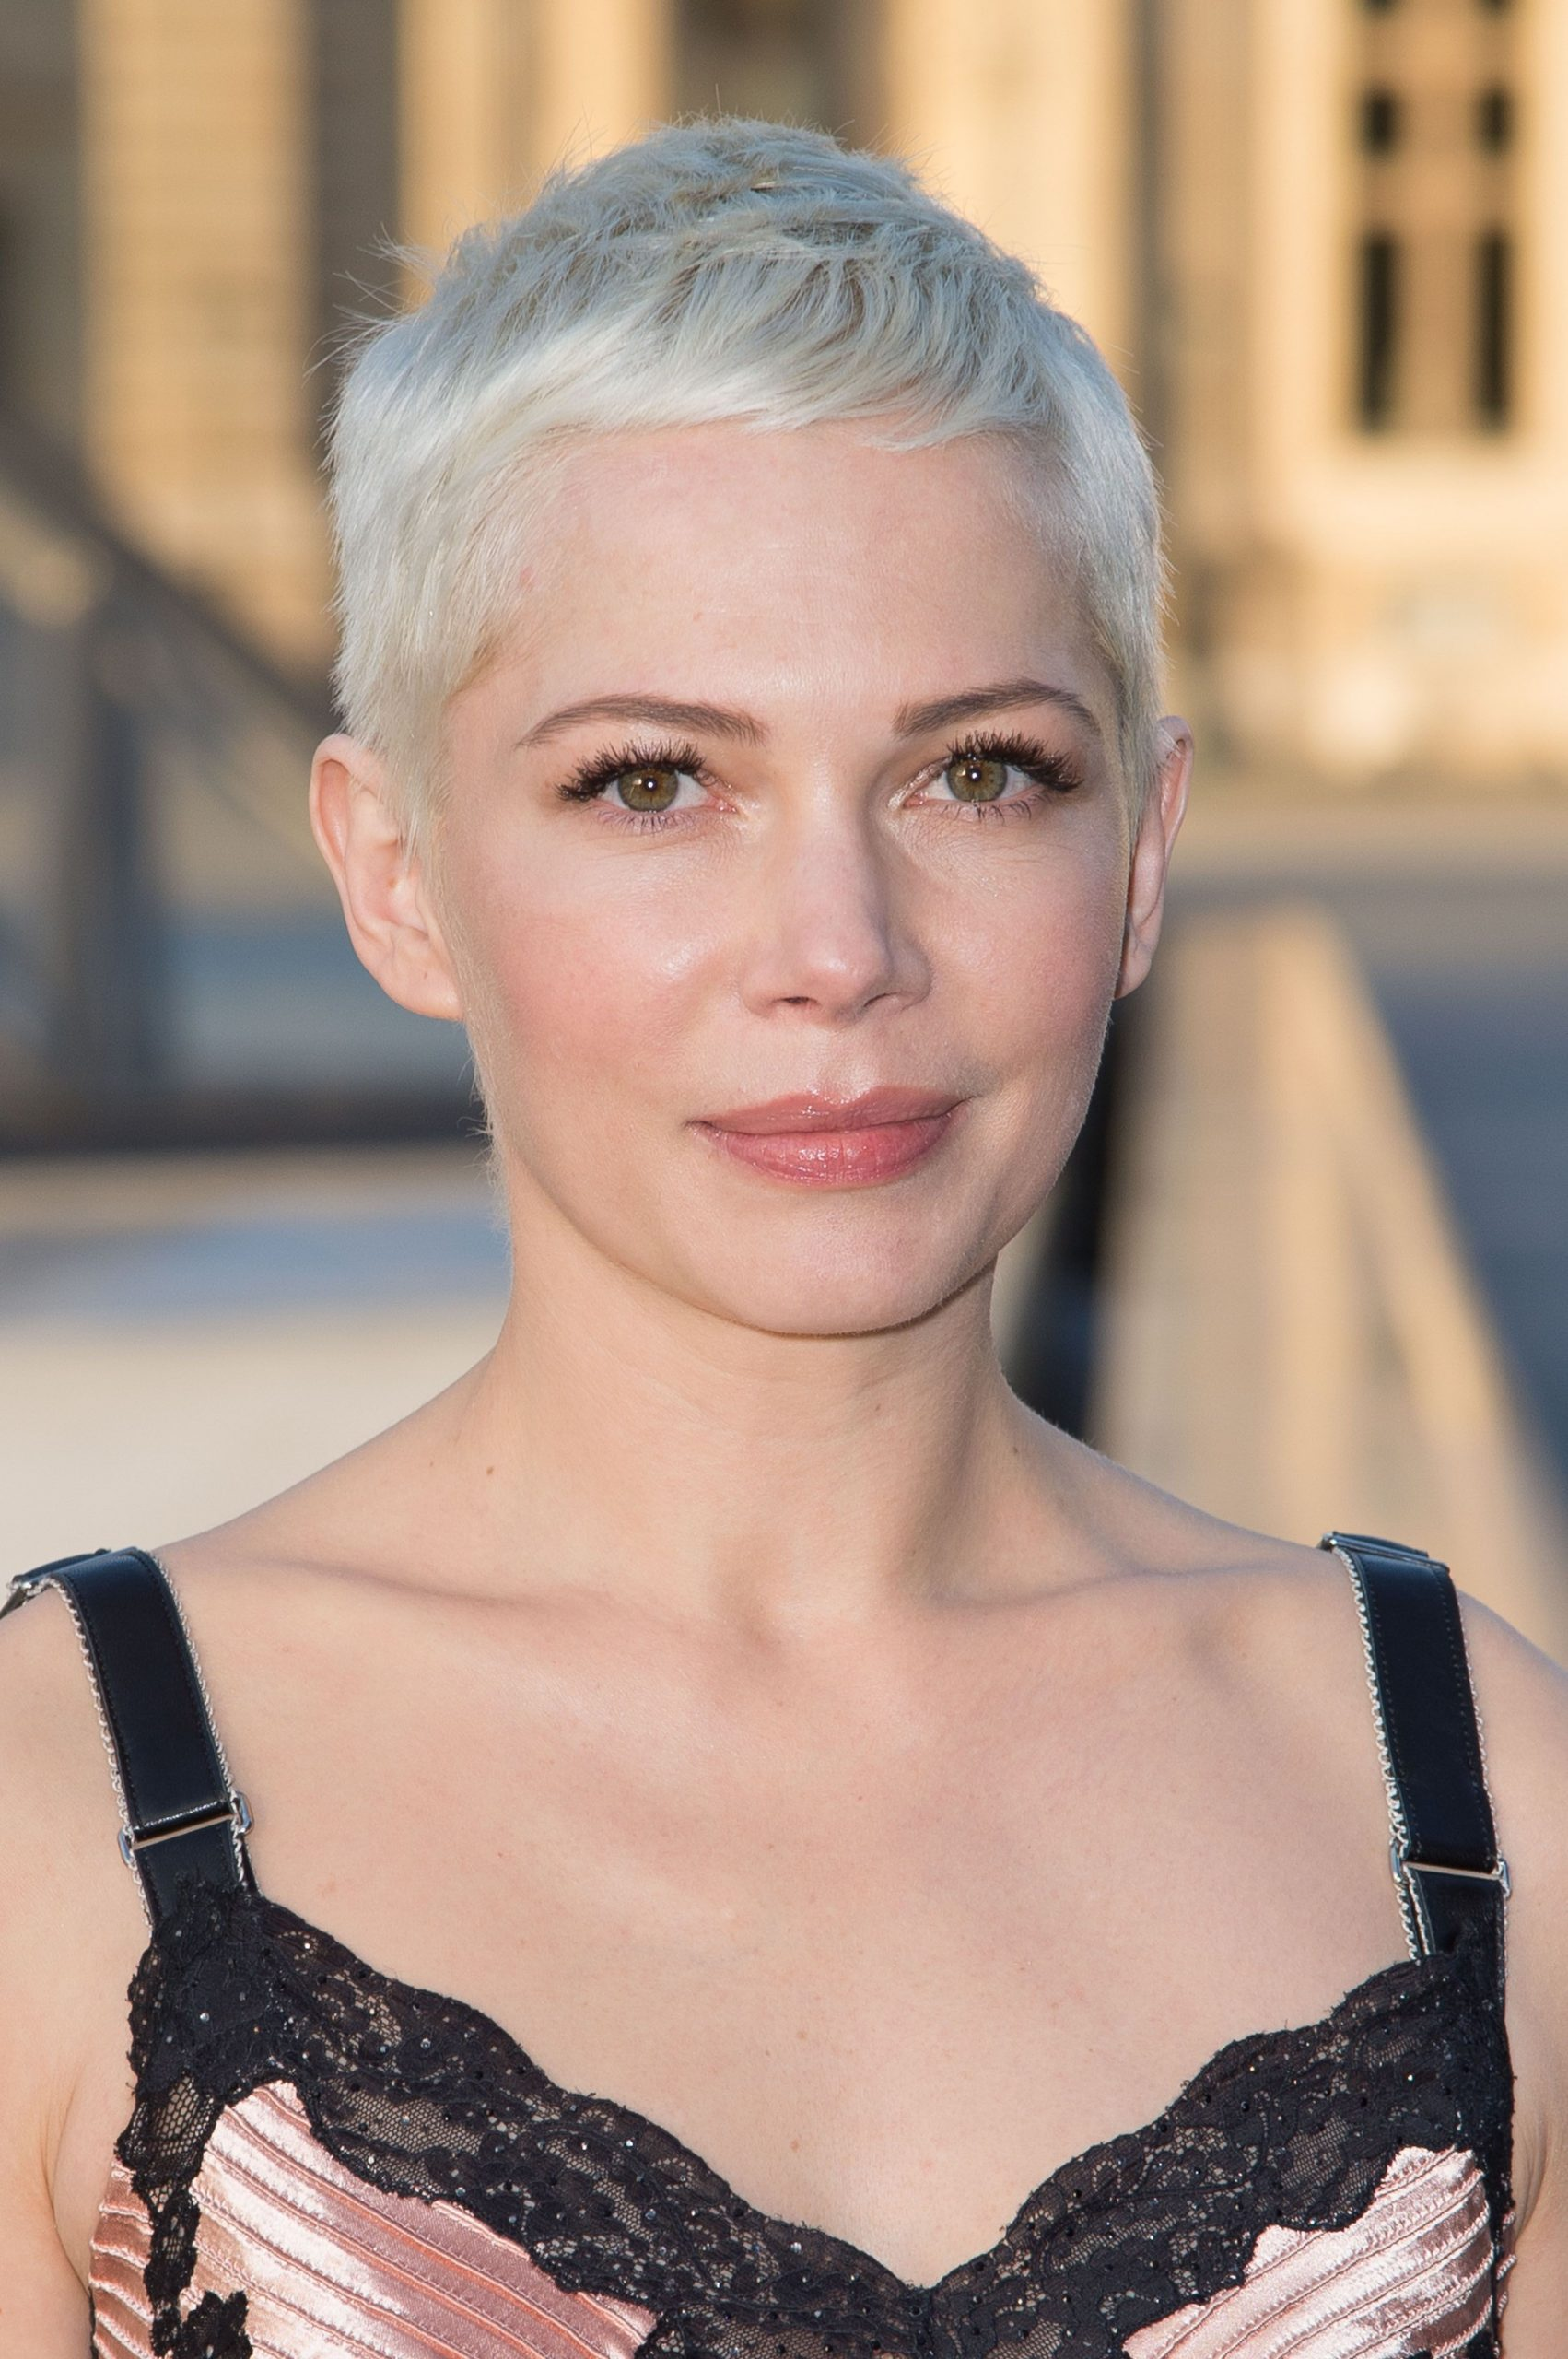 10 Pixie Cuts We Love For 10 Short Pixie Hairstyles From Super Short Pixie Cut